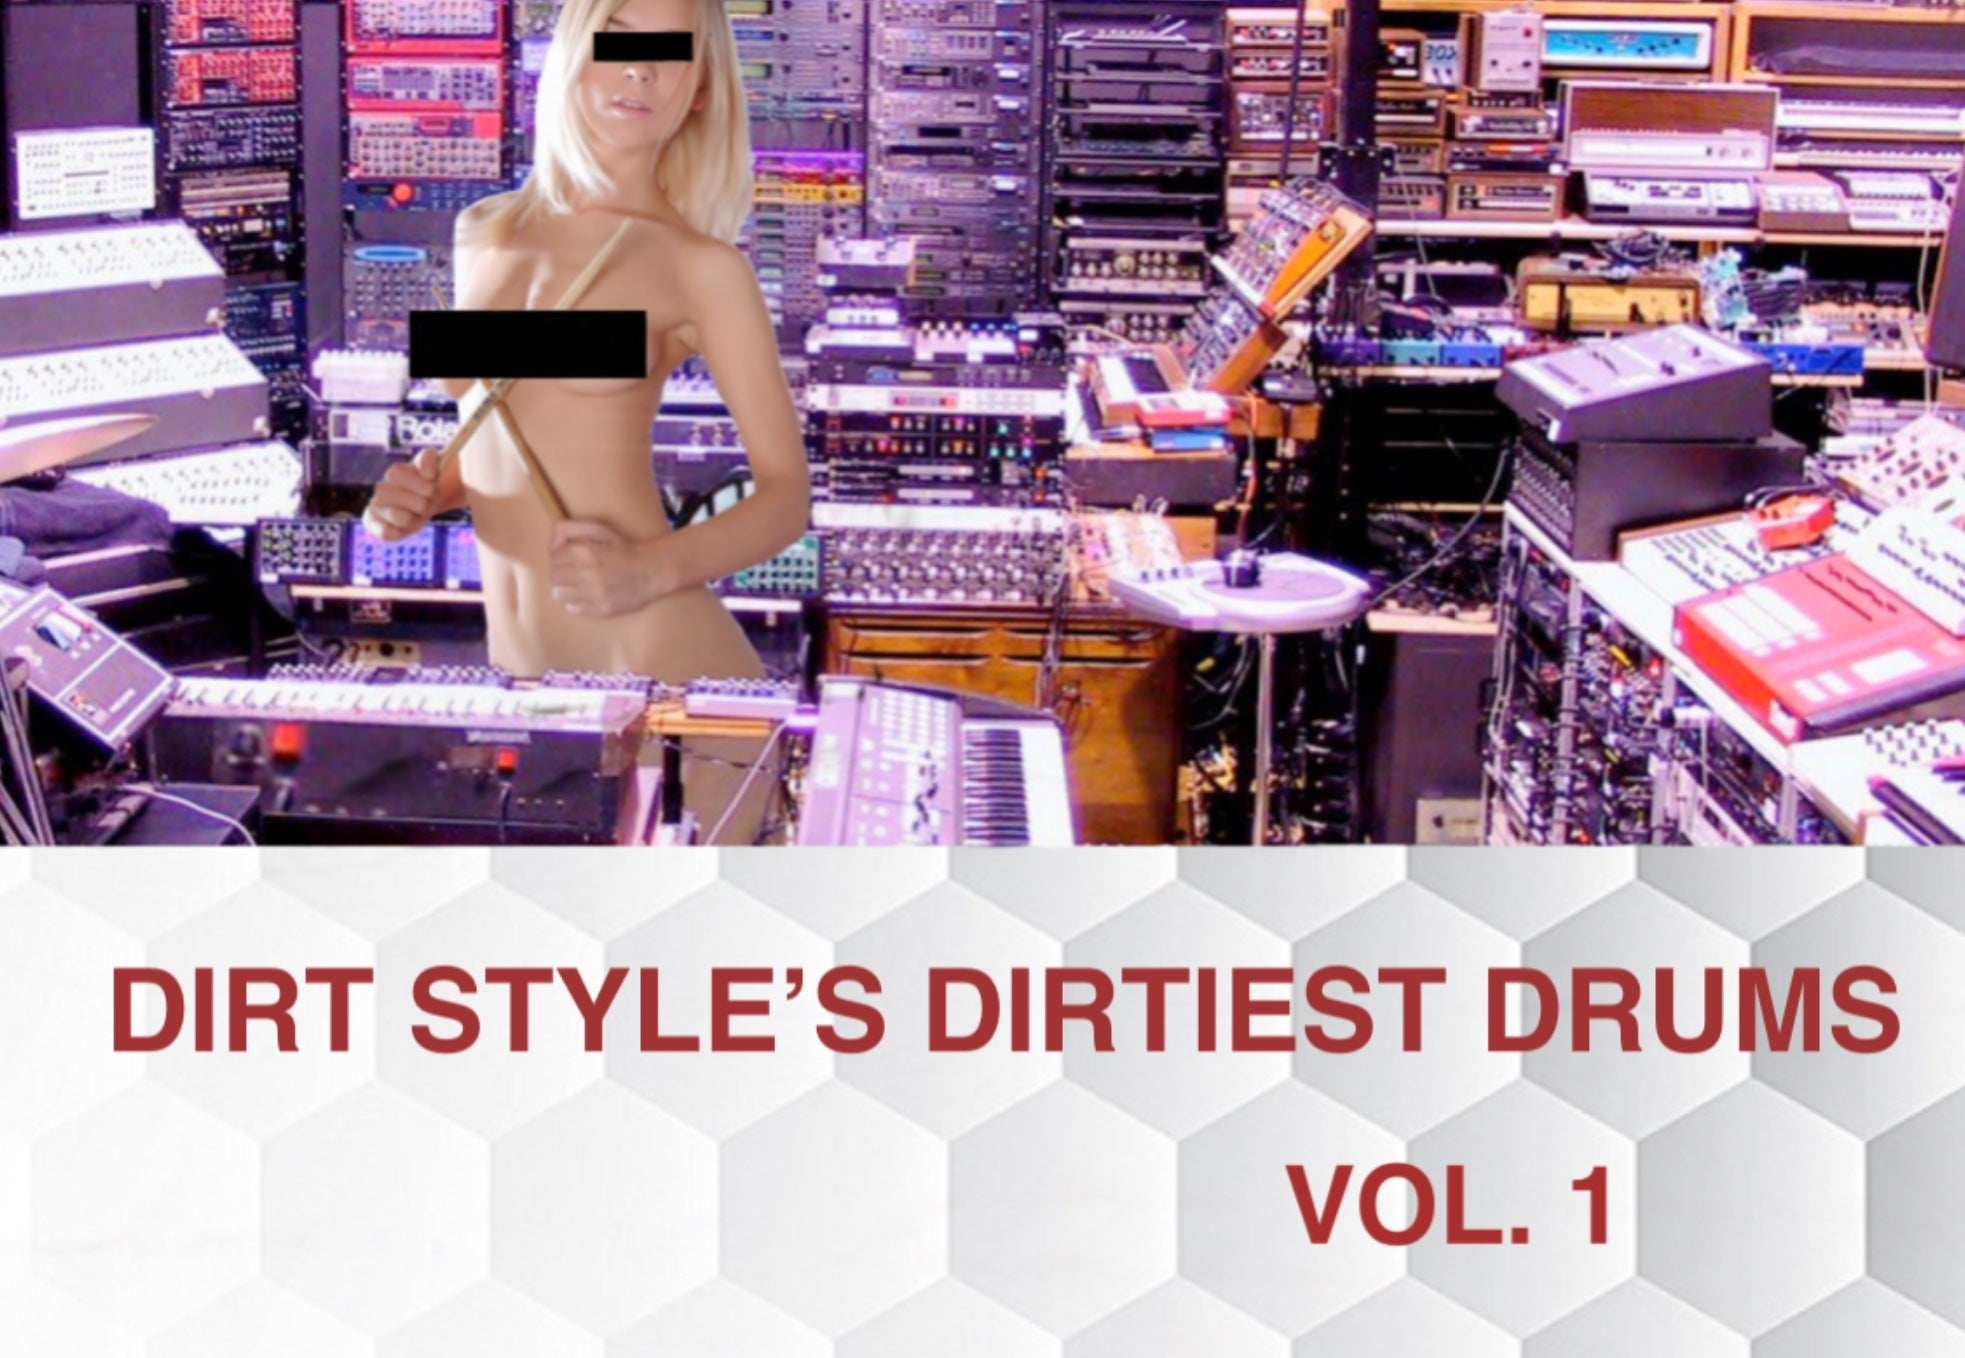 Dirt Style's Dirtiest Drums